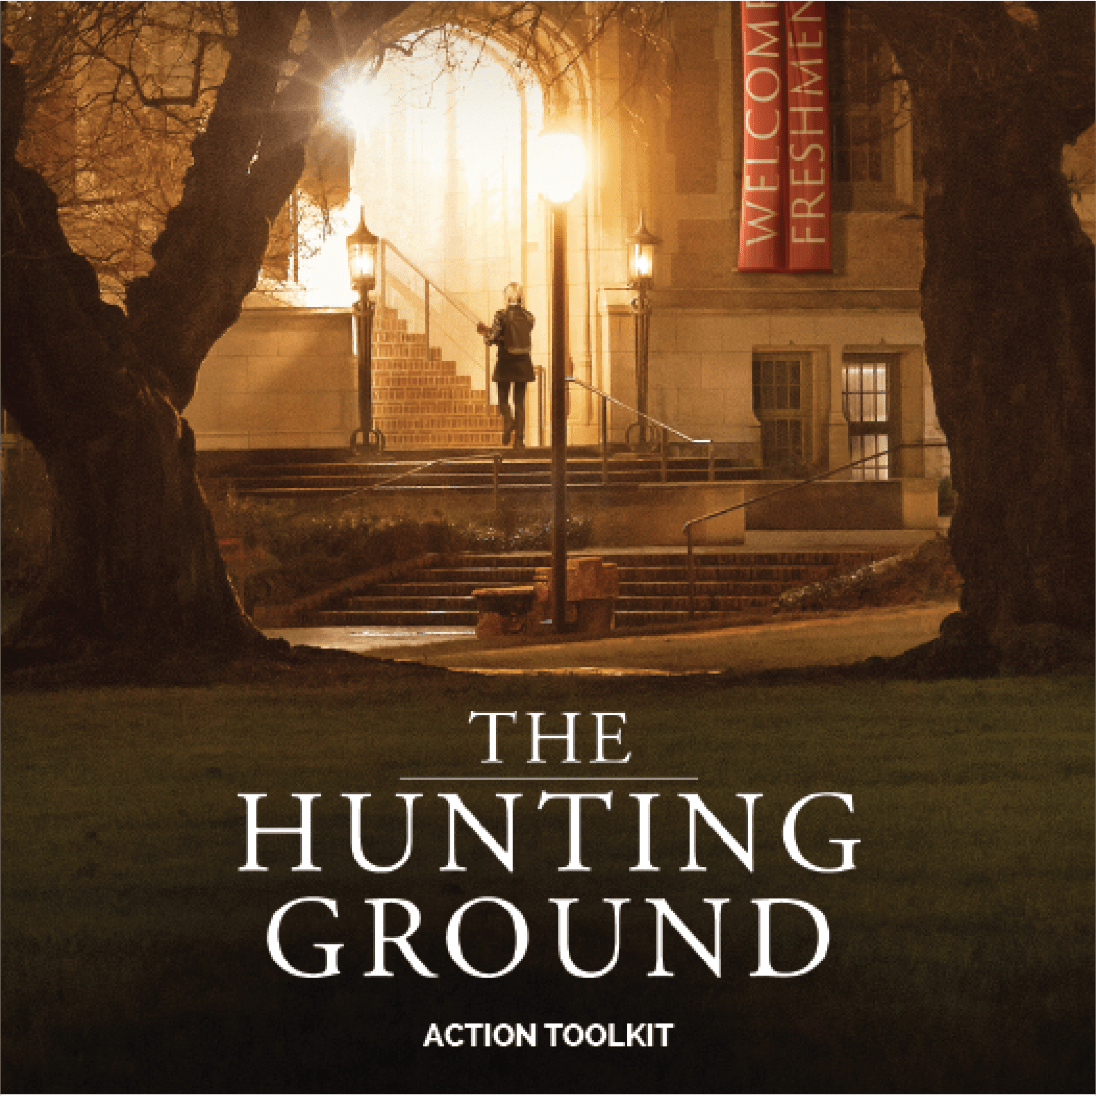 Cover of the Hunting Ground Toolkit with picture of college building at night, one person and a light post featured prominantly